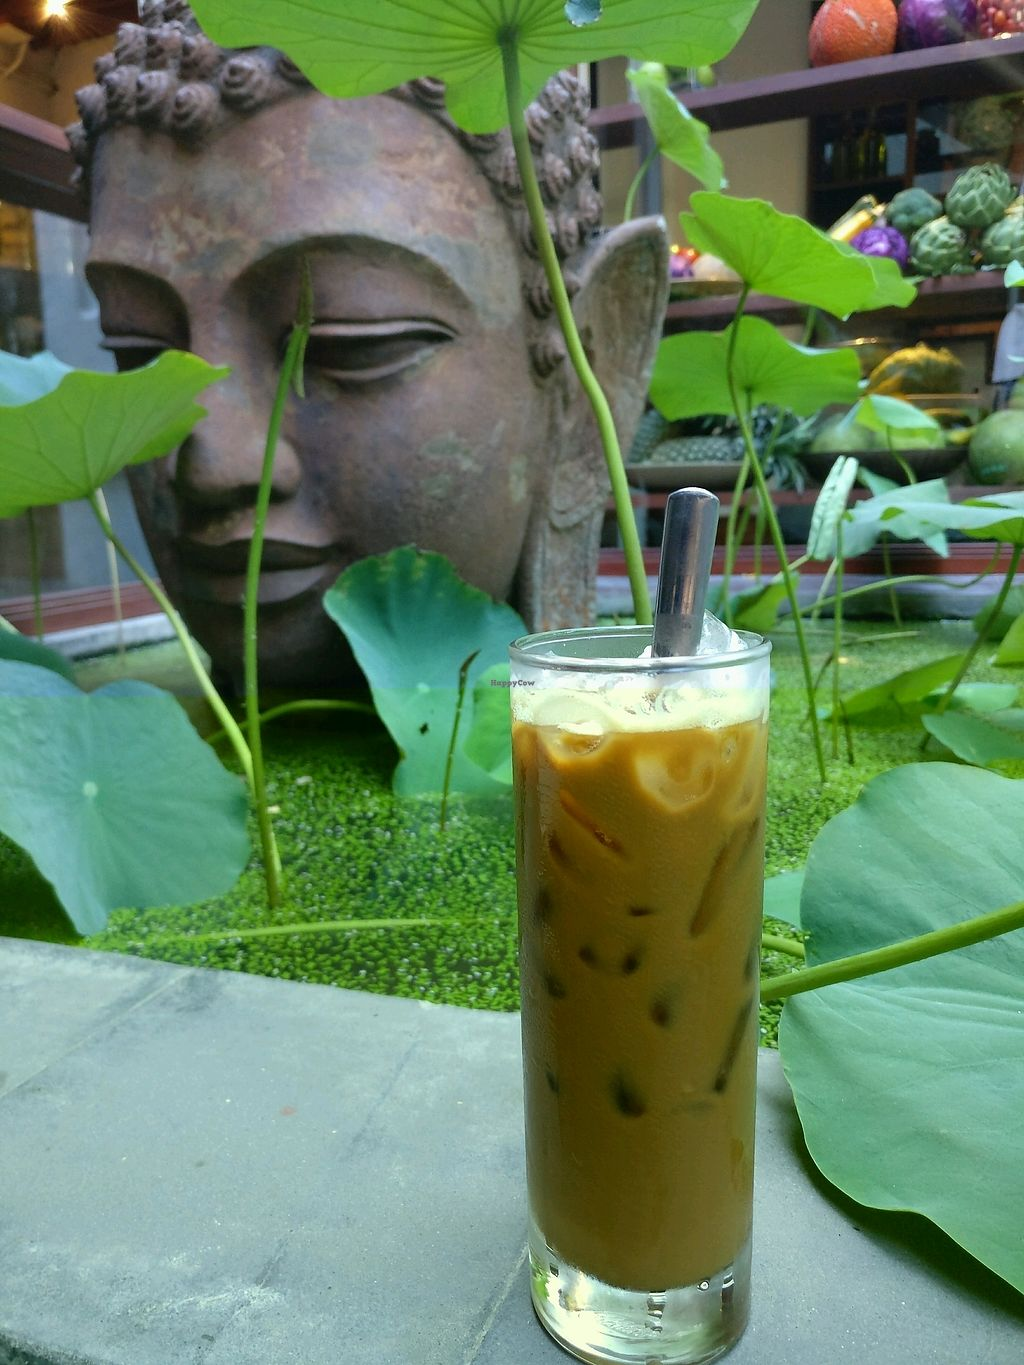 """Photo of Hum Vegetarian - District 3  by <a href=""""/members/profile/cdnvegan"""">cdnvegan</a> <br/>Vietnamese coffee  <br/> February 24, 2018  - <a href='/contact/abuse/image/36320/363135'>Report</a>"""